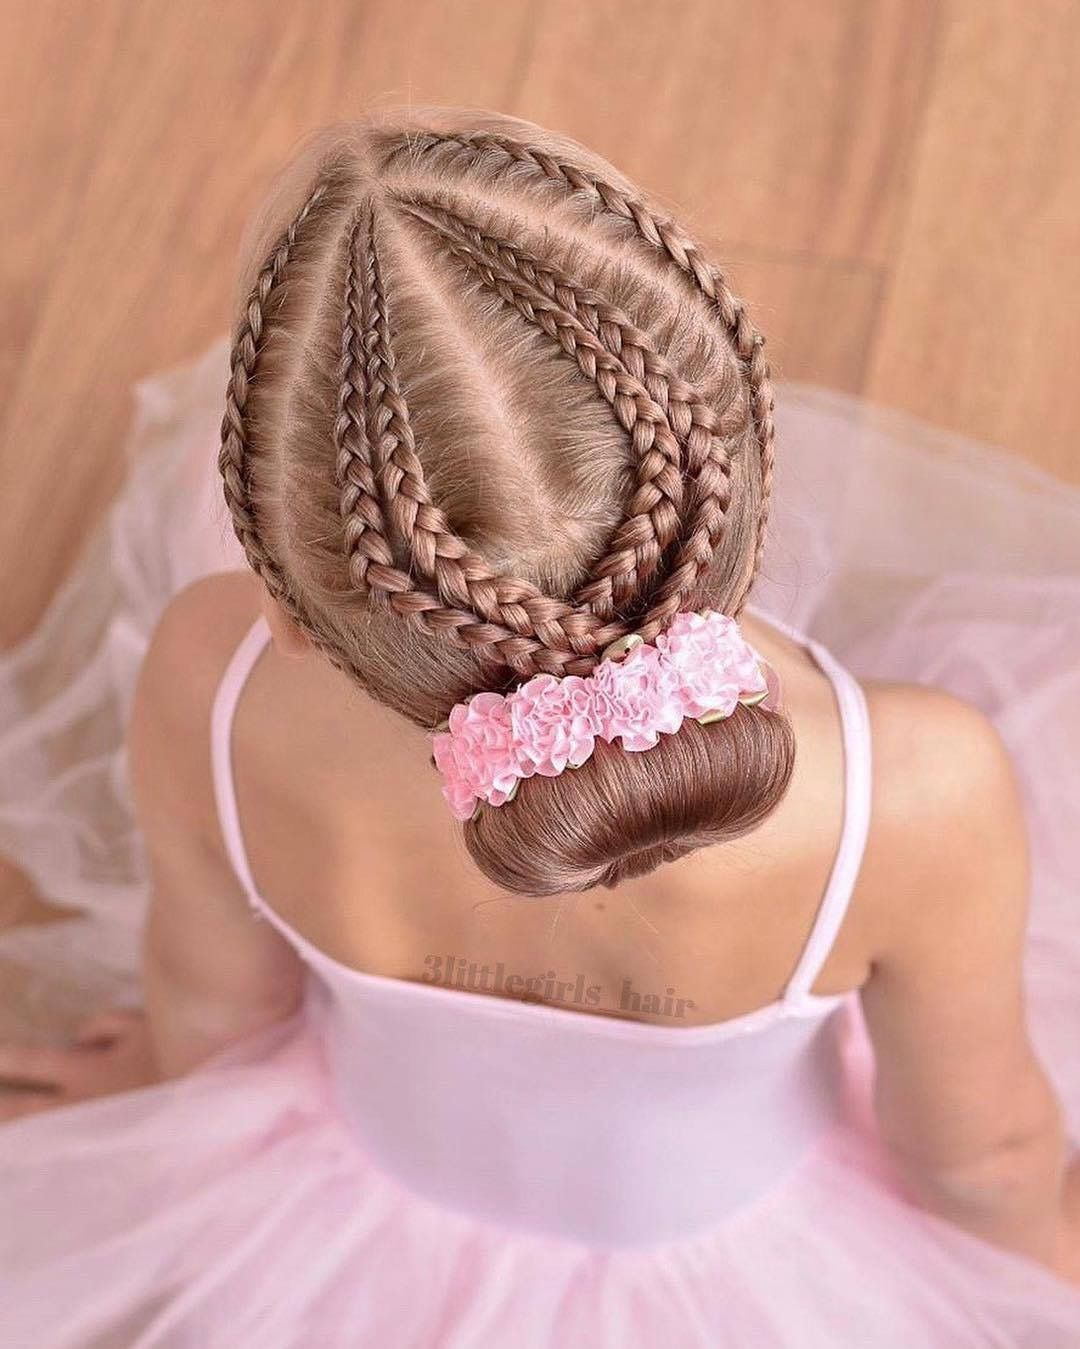 Pin By Hiber Ciro On Idea For Wella S Hair Baby Hairstyles Braided Hairstyles Girl Hair Dos